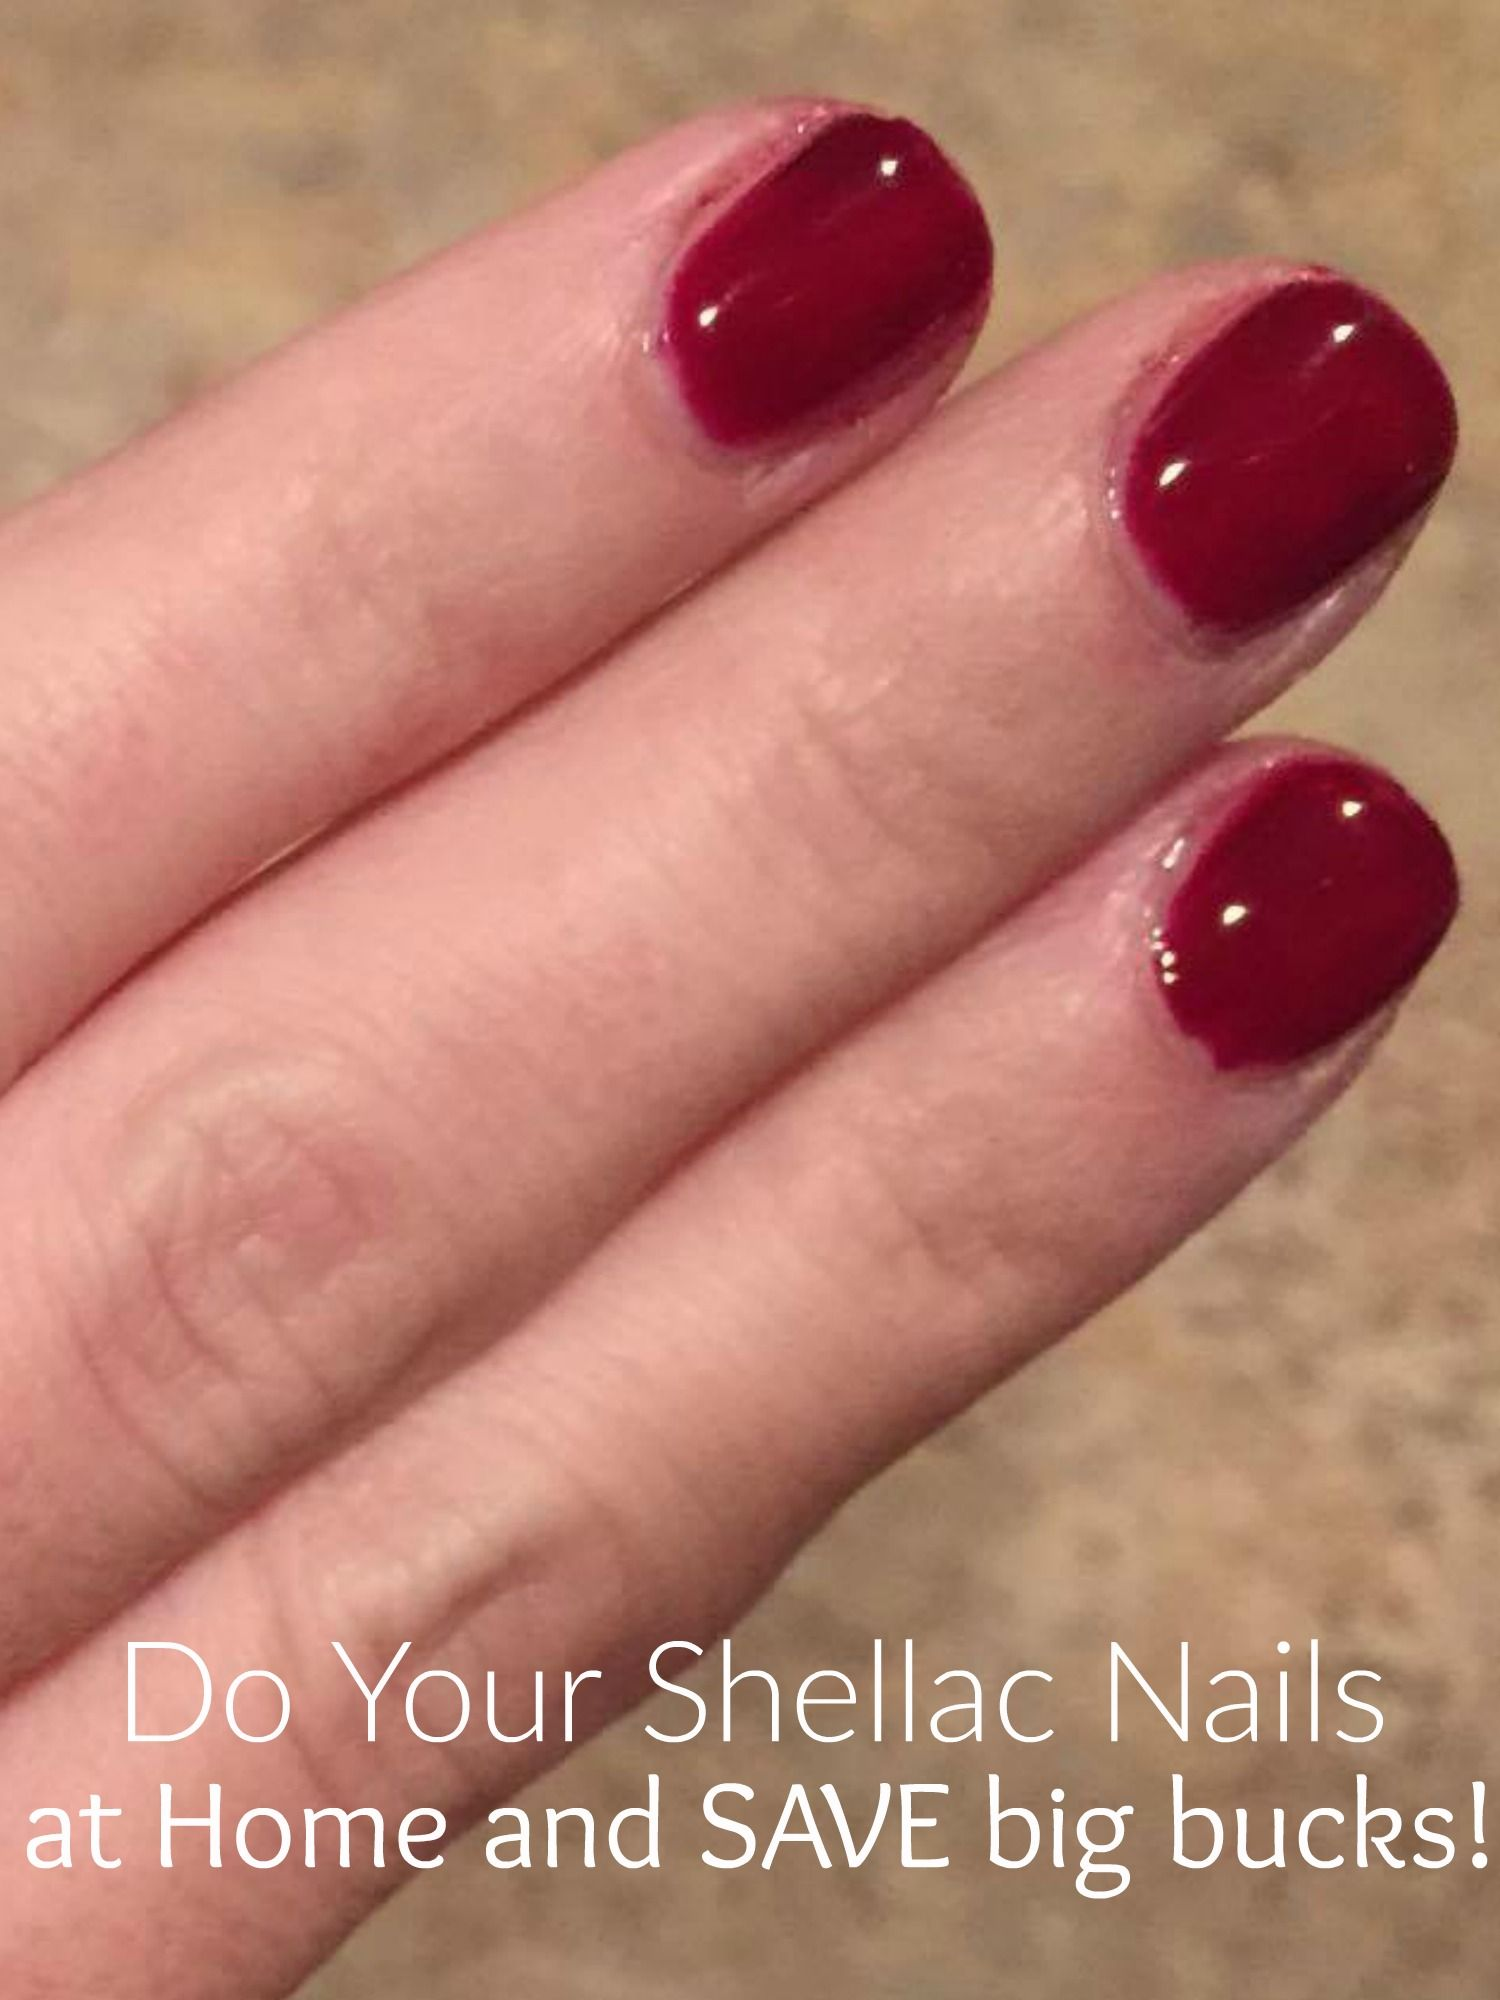 Shellac nails on a budget how to do shellac nails at home to find out how to do shellac nails at home easy and on a budget this is so easy youll never go back to the salon again solutioingenieria Images